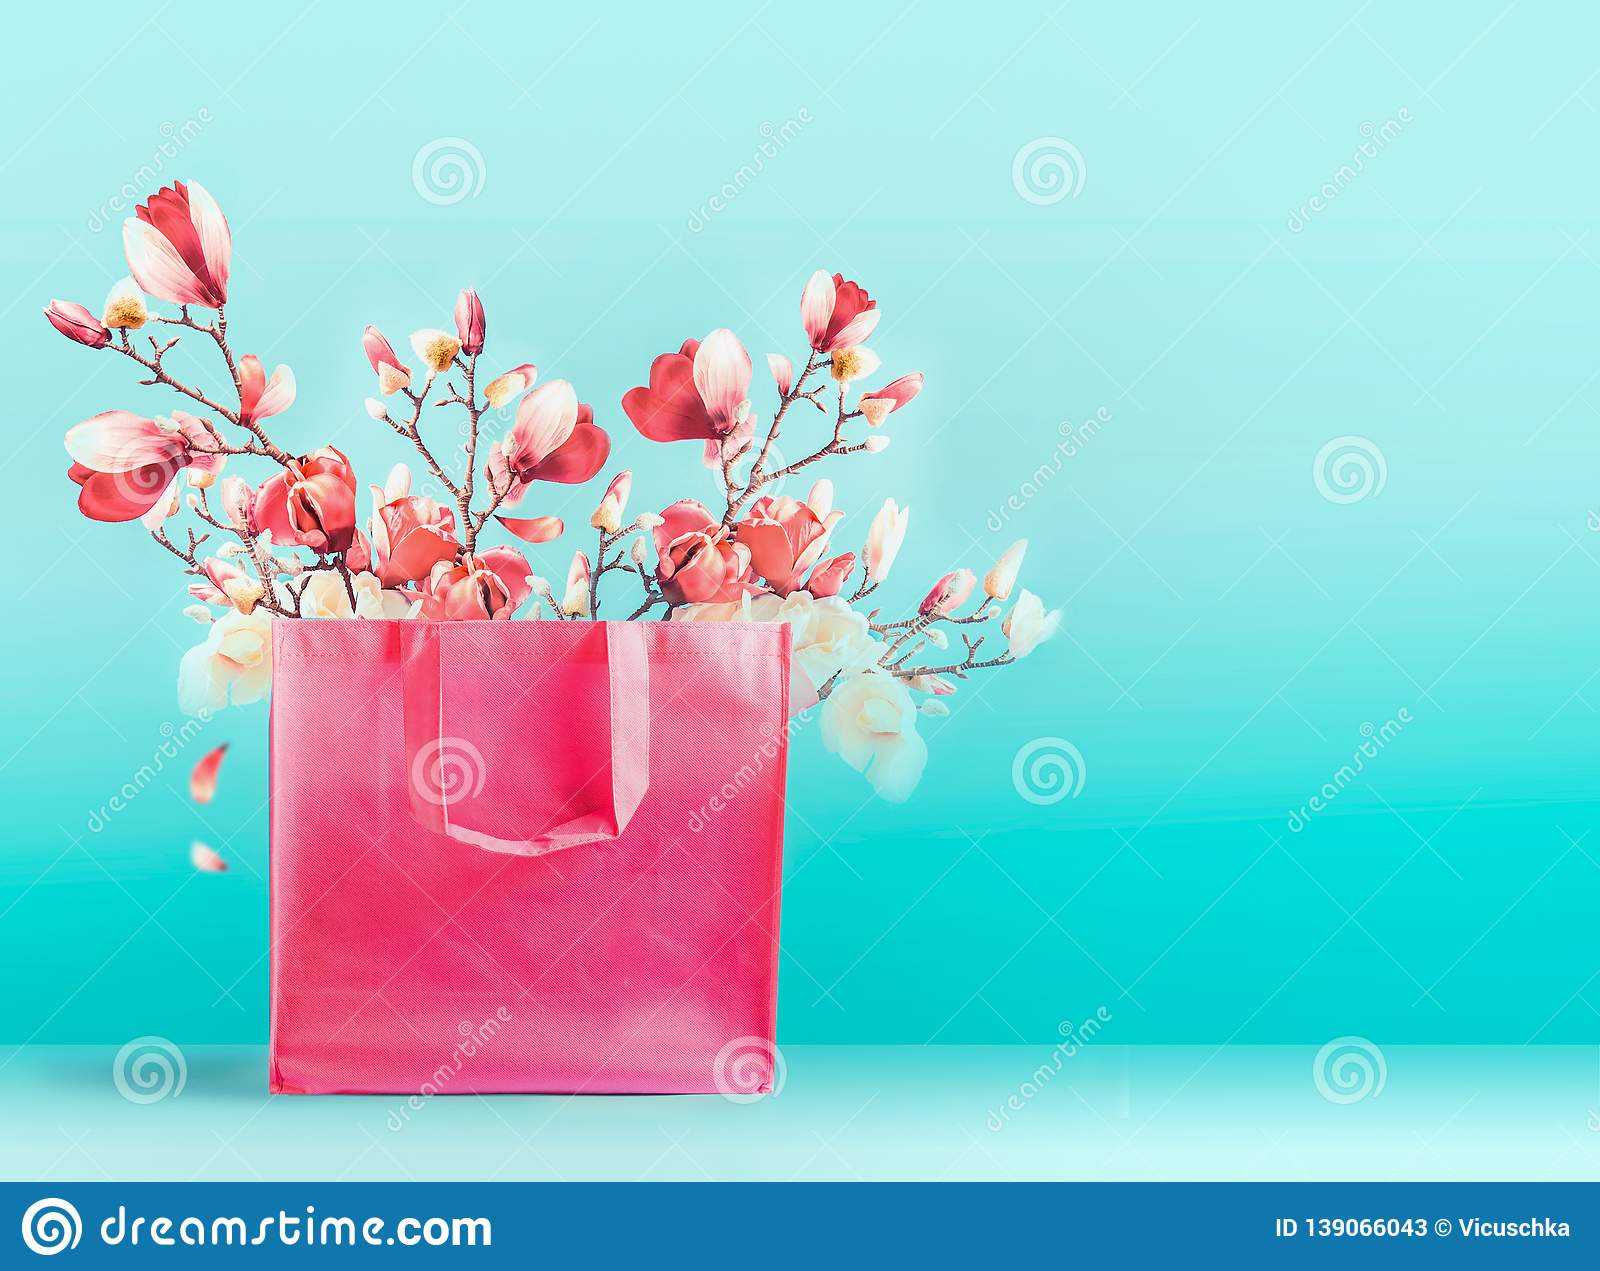 Pink shopping bag with spring blossom branches standing at turquoise blue background. Trendy color. Creative spring time and